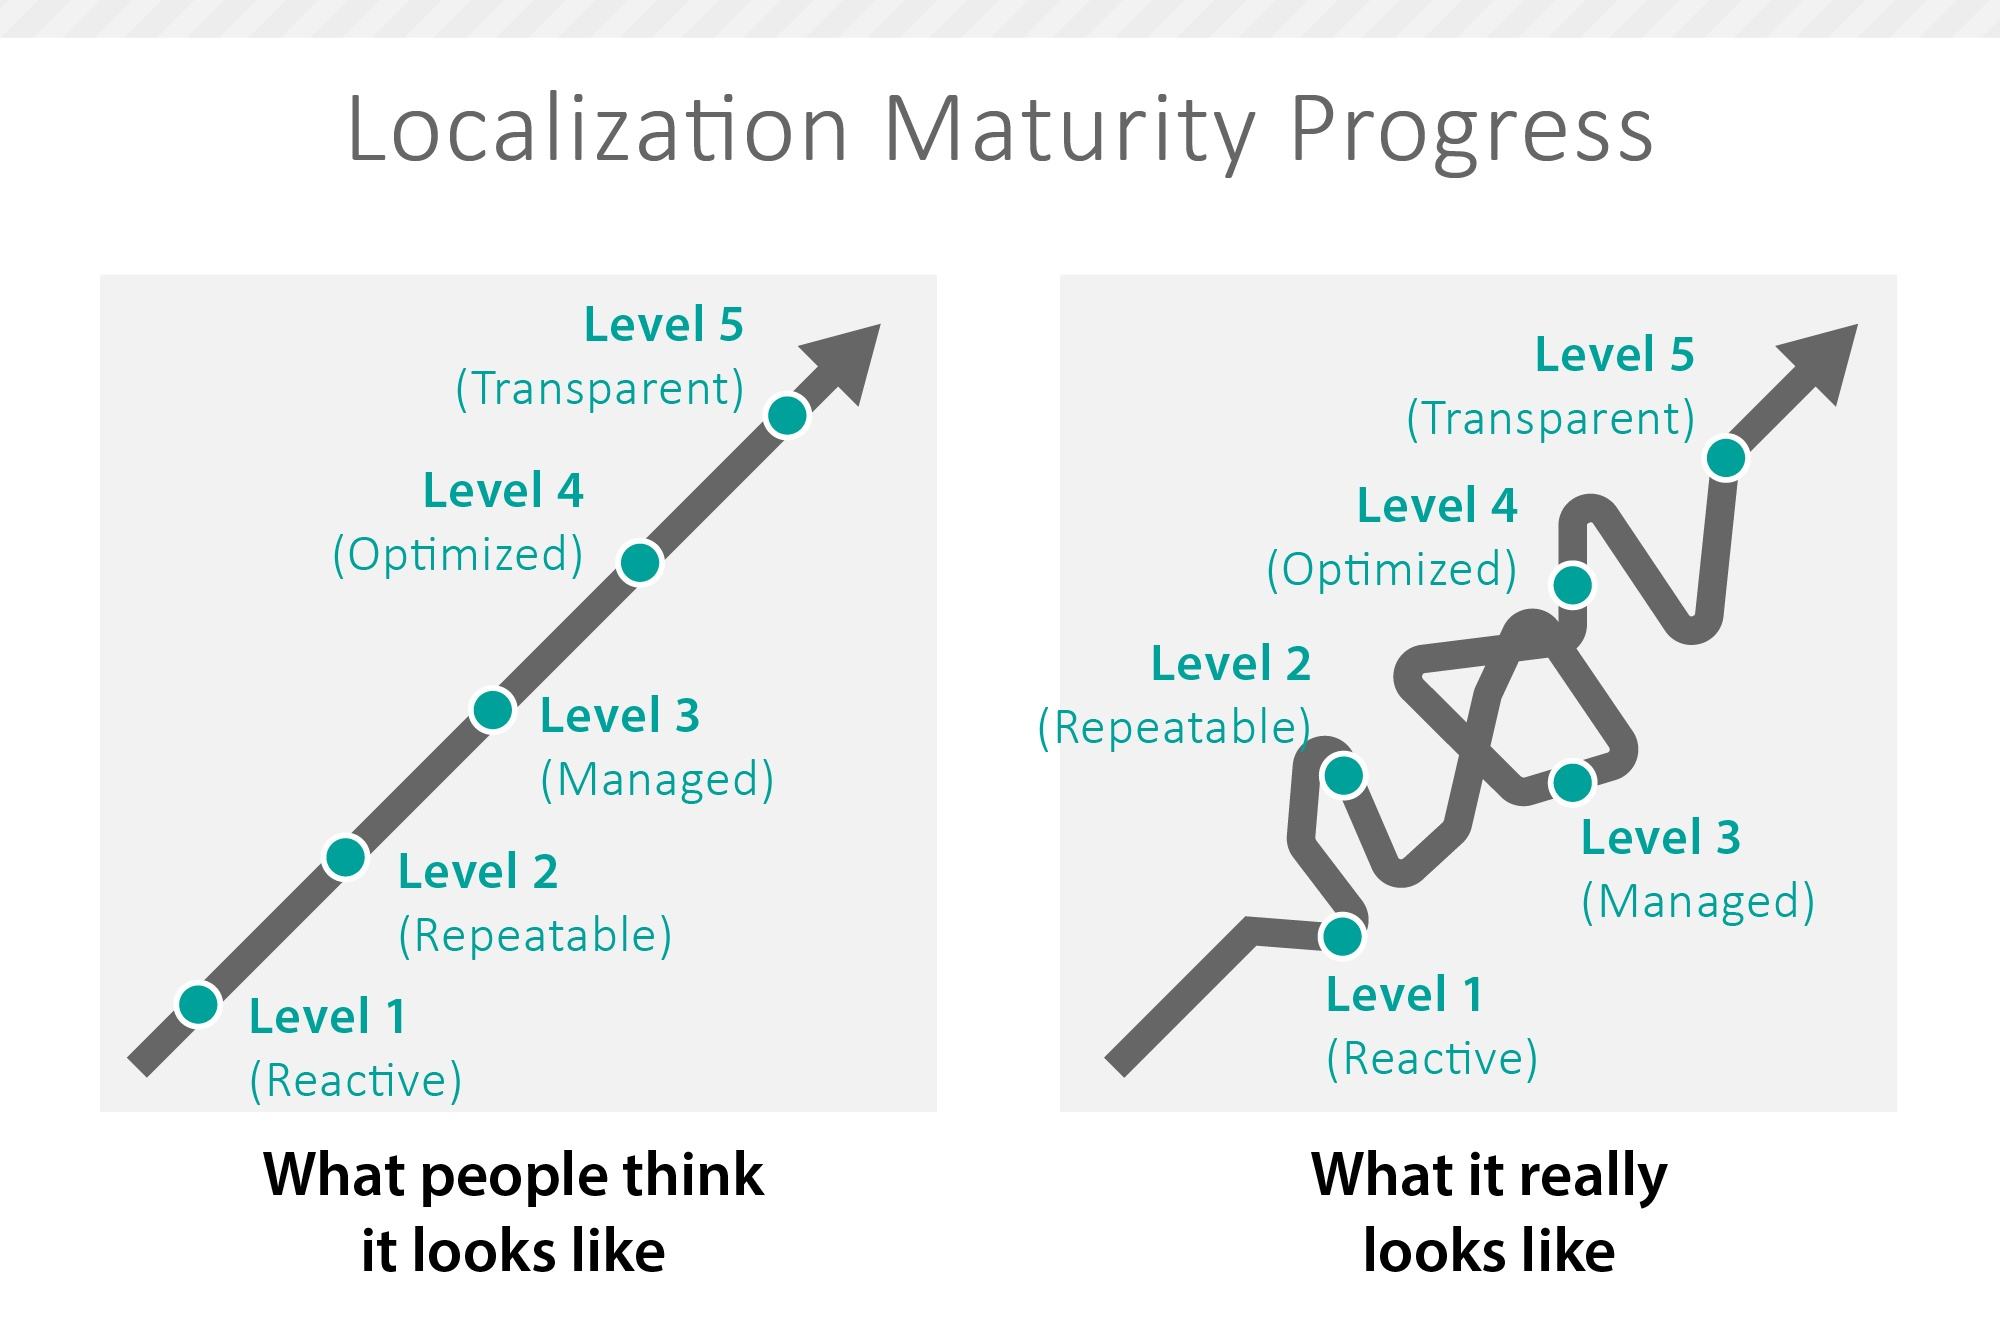 Shuffle between localization maturity levels